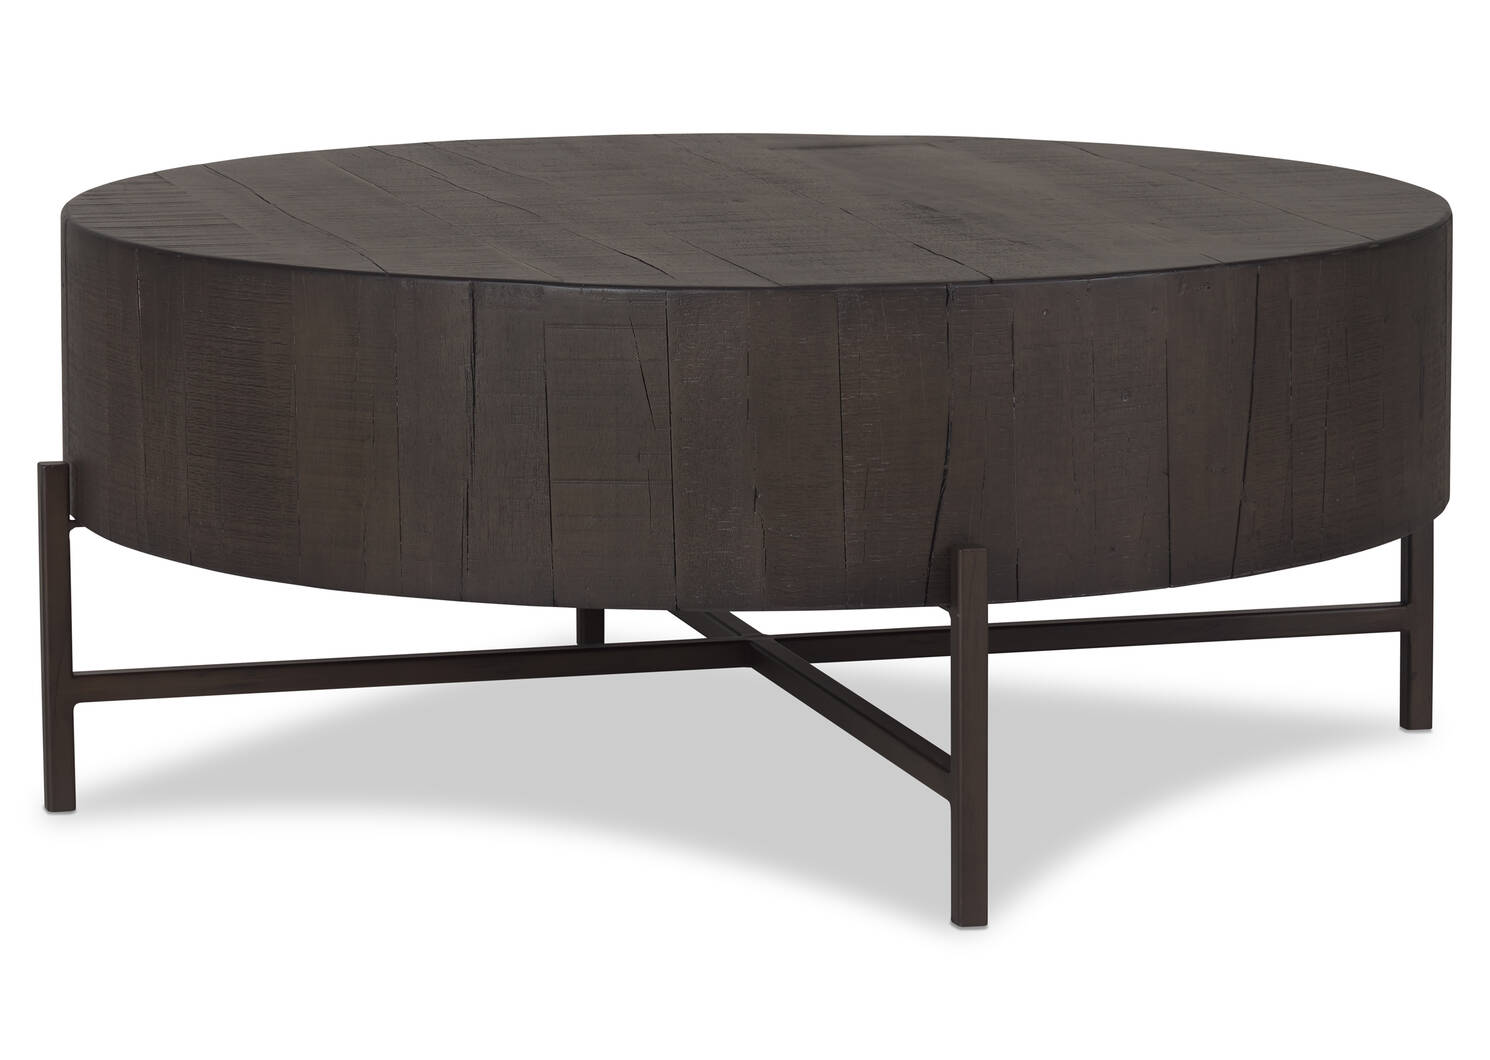 Table basse Atwell